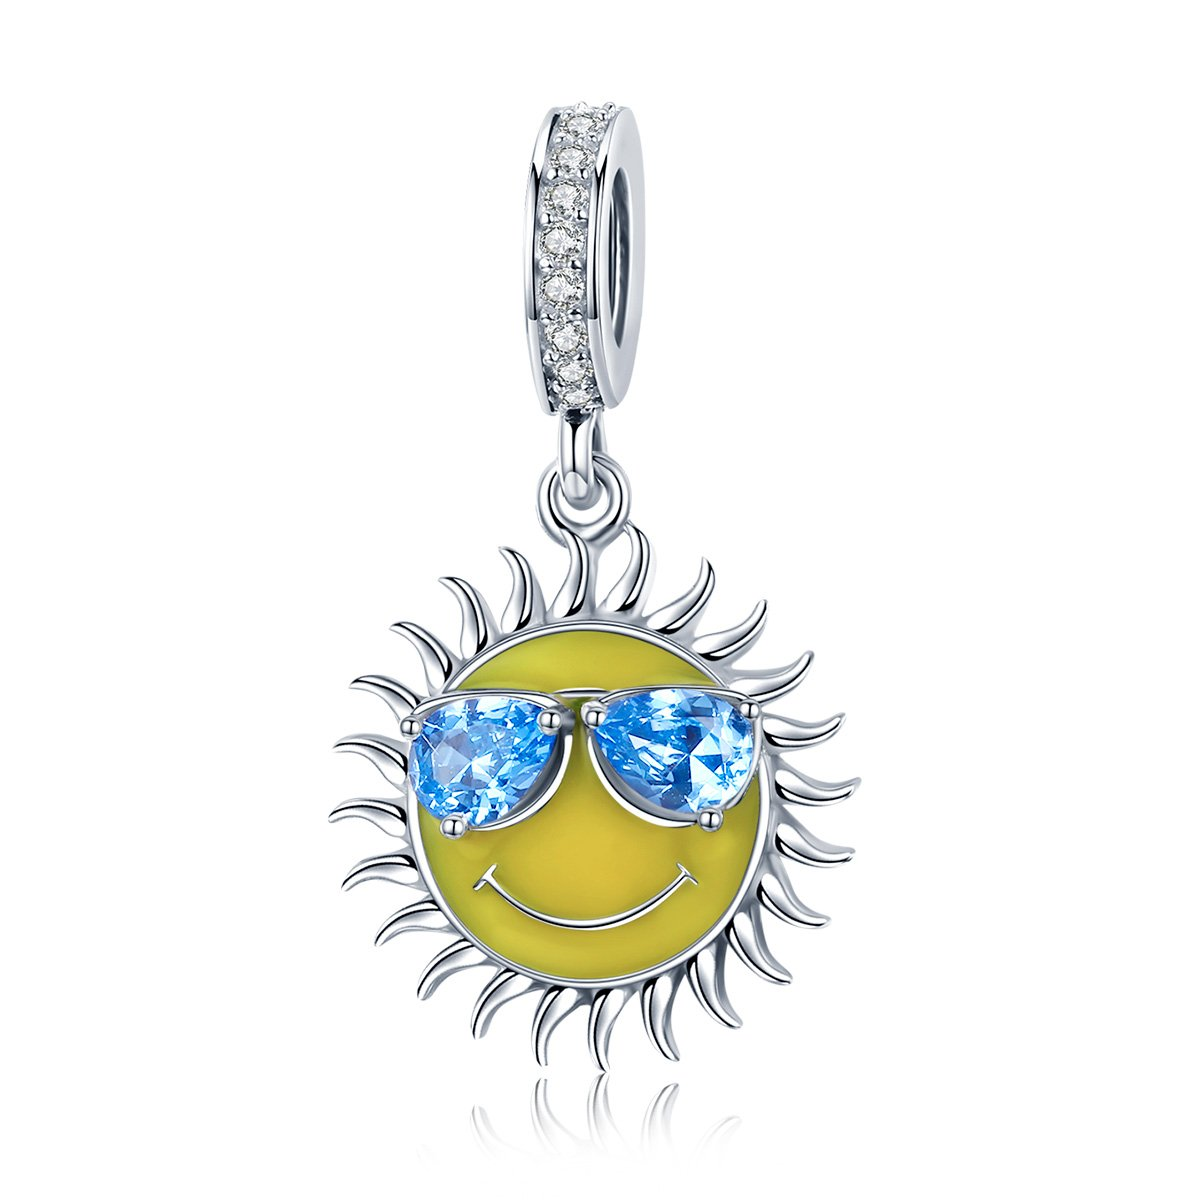 WOSTU Summer Charm 925 Sterling Silver Cool Sun Dangle Charm Vocation Charms for Charm Bracelets